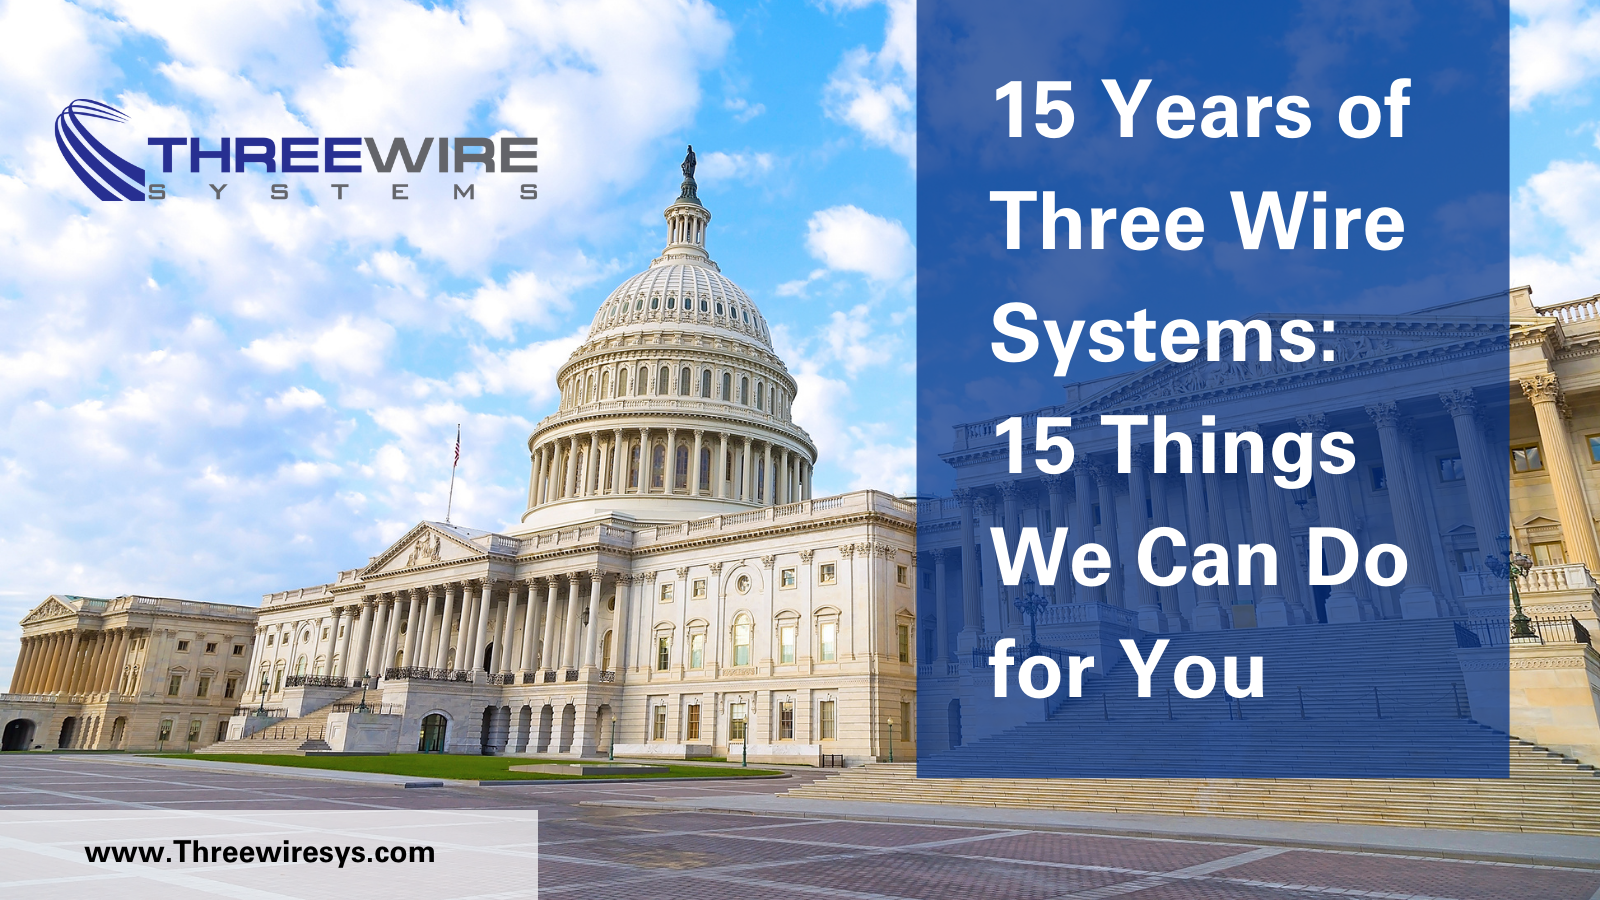 15 Years of Three Wire Systems: 15 Things We Can Do for You